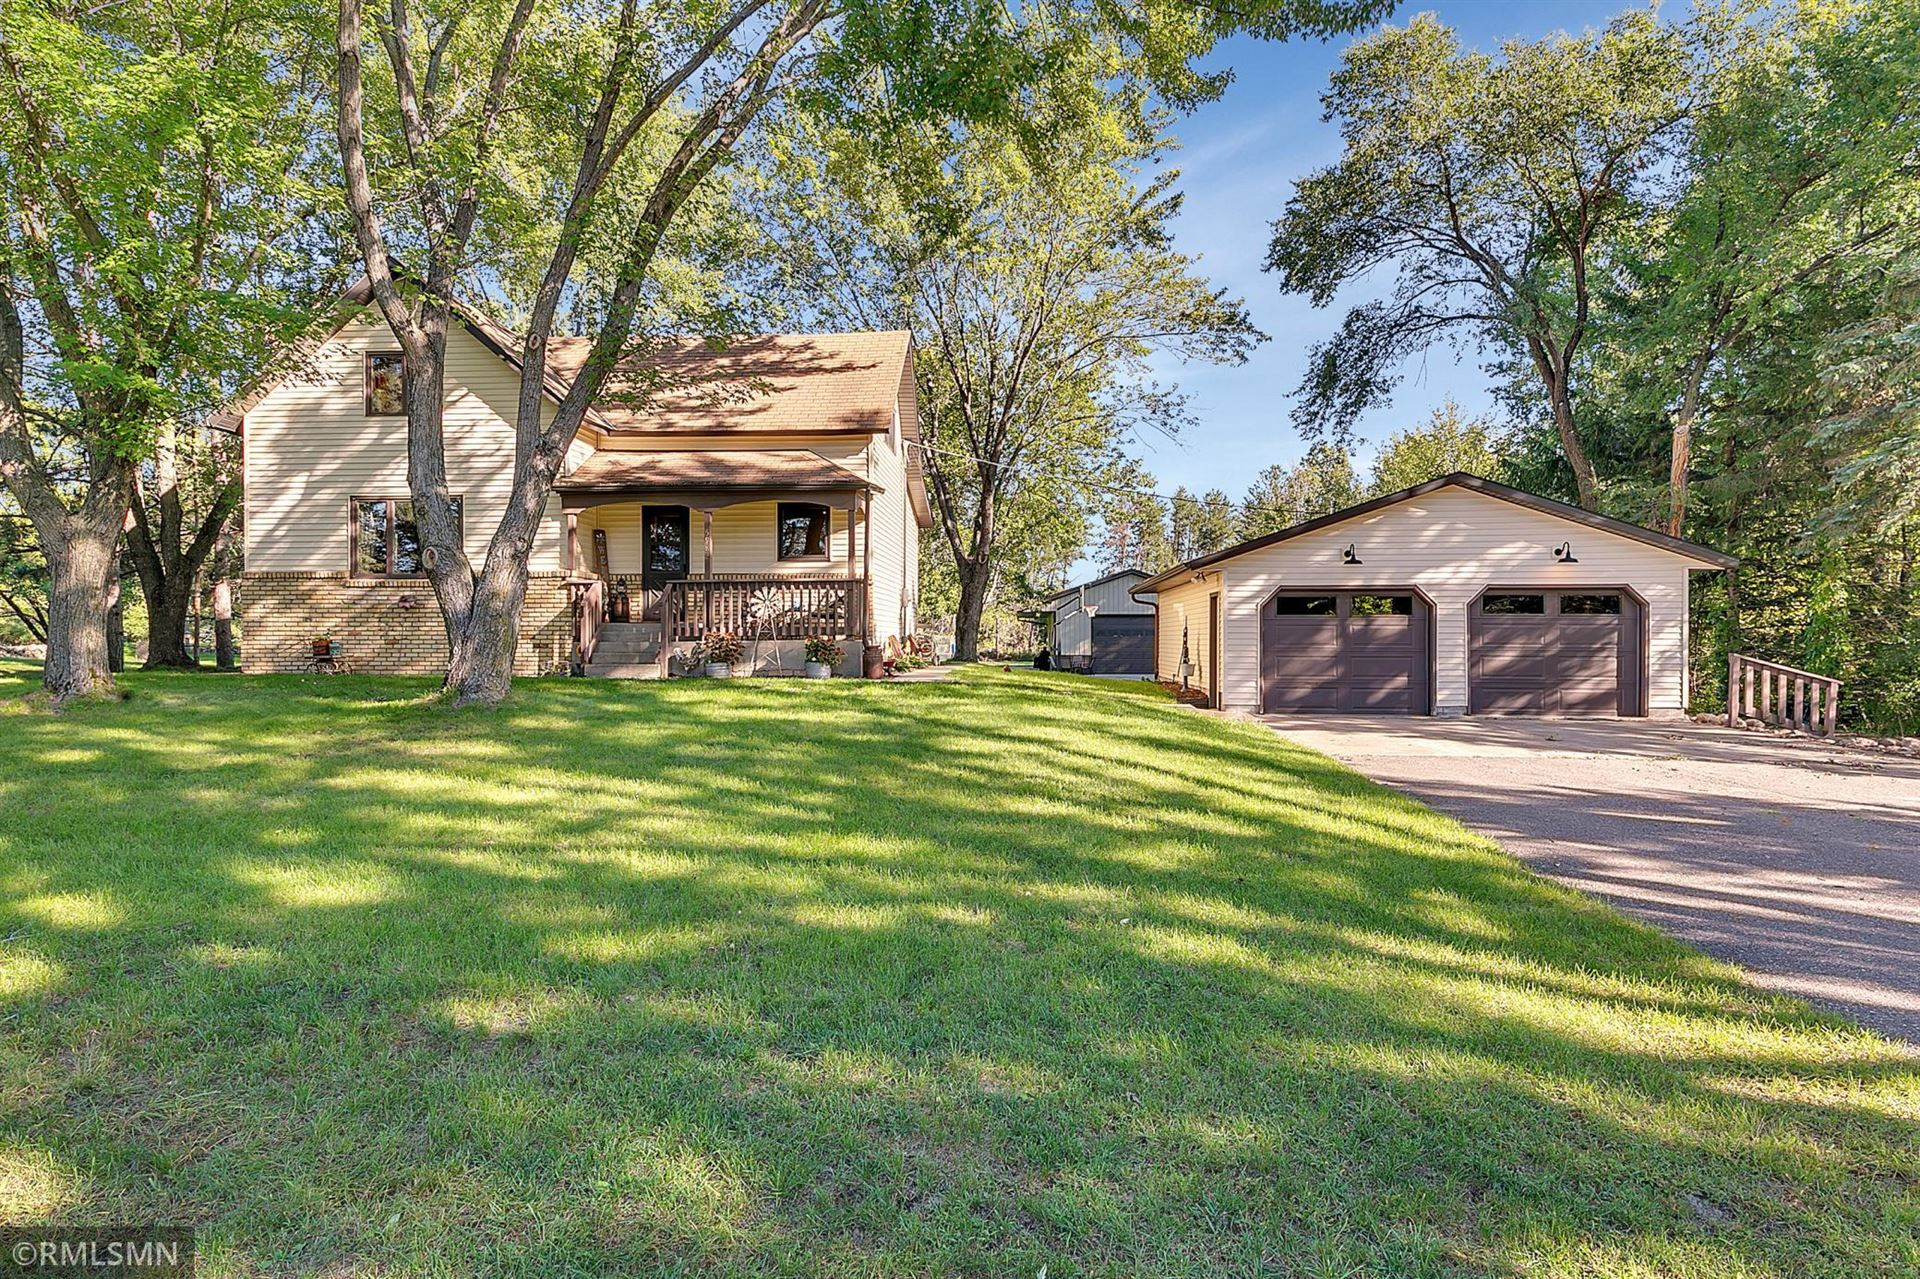 5982 County Road 5, Rice, MN 56367 - #: 6101128